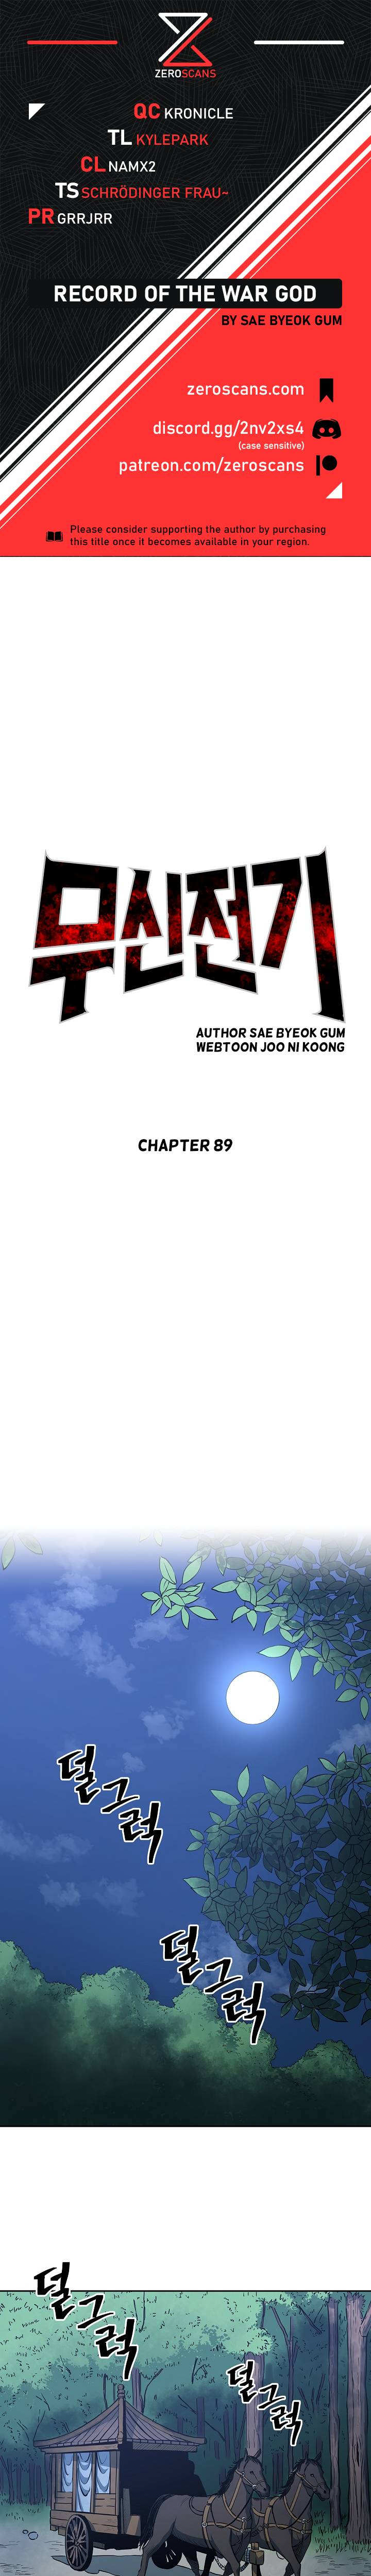 Record of the War God - chapter 89 - #1